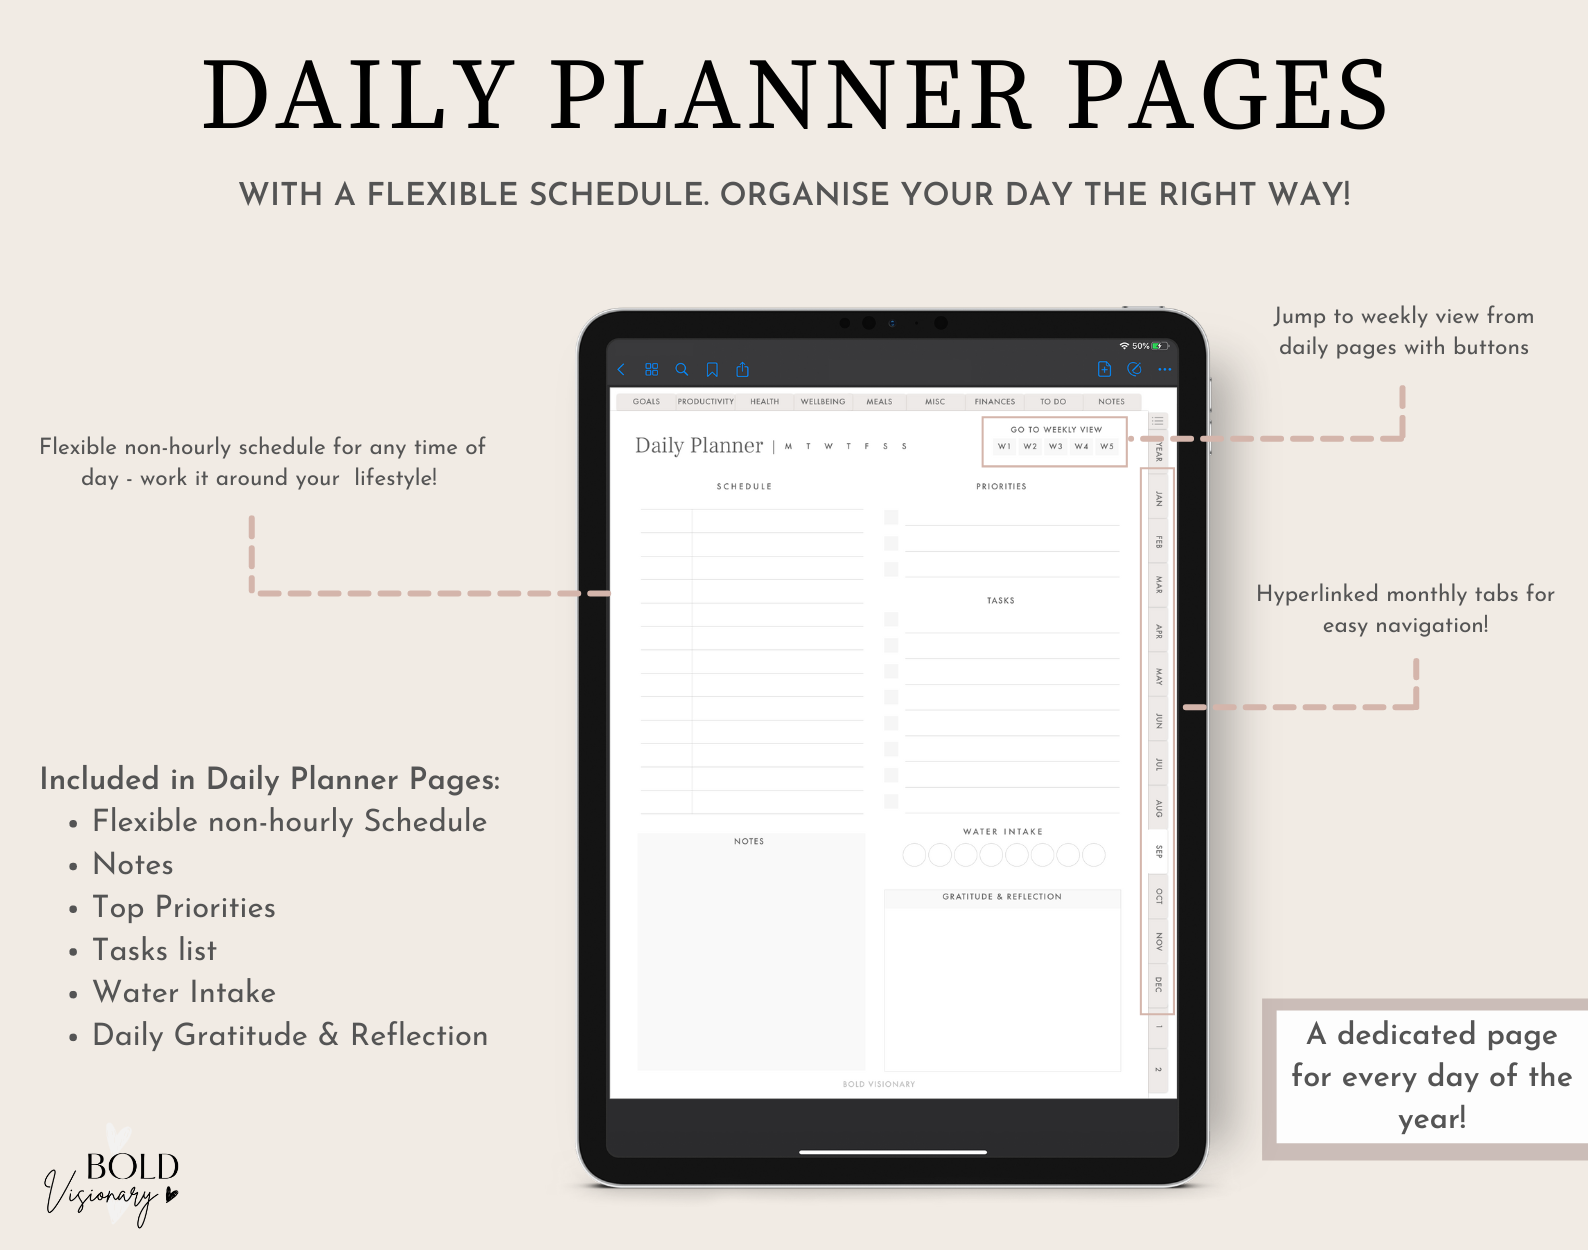 6Daily-Planner-PAgeBold-Visionary-Digital-Planner